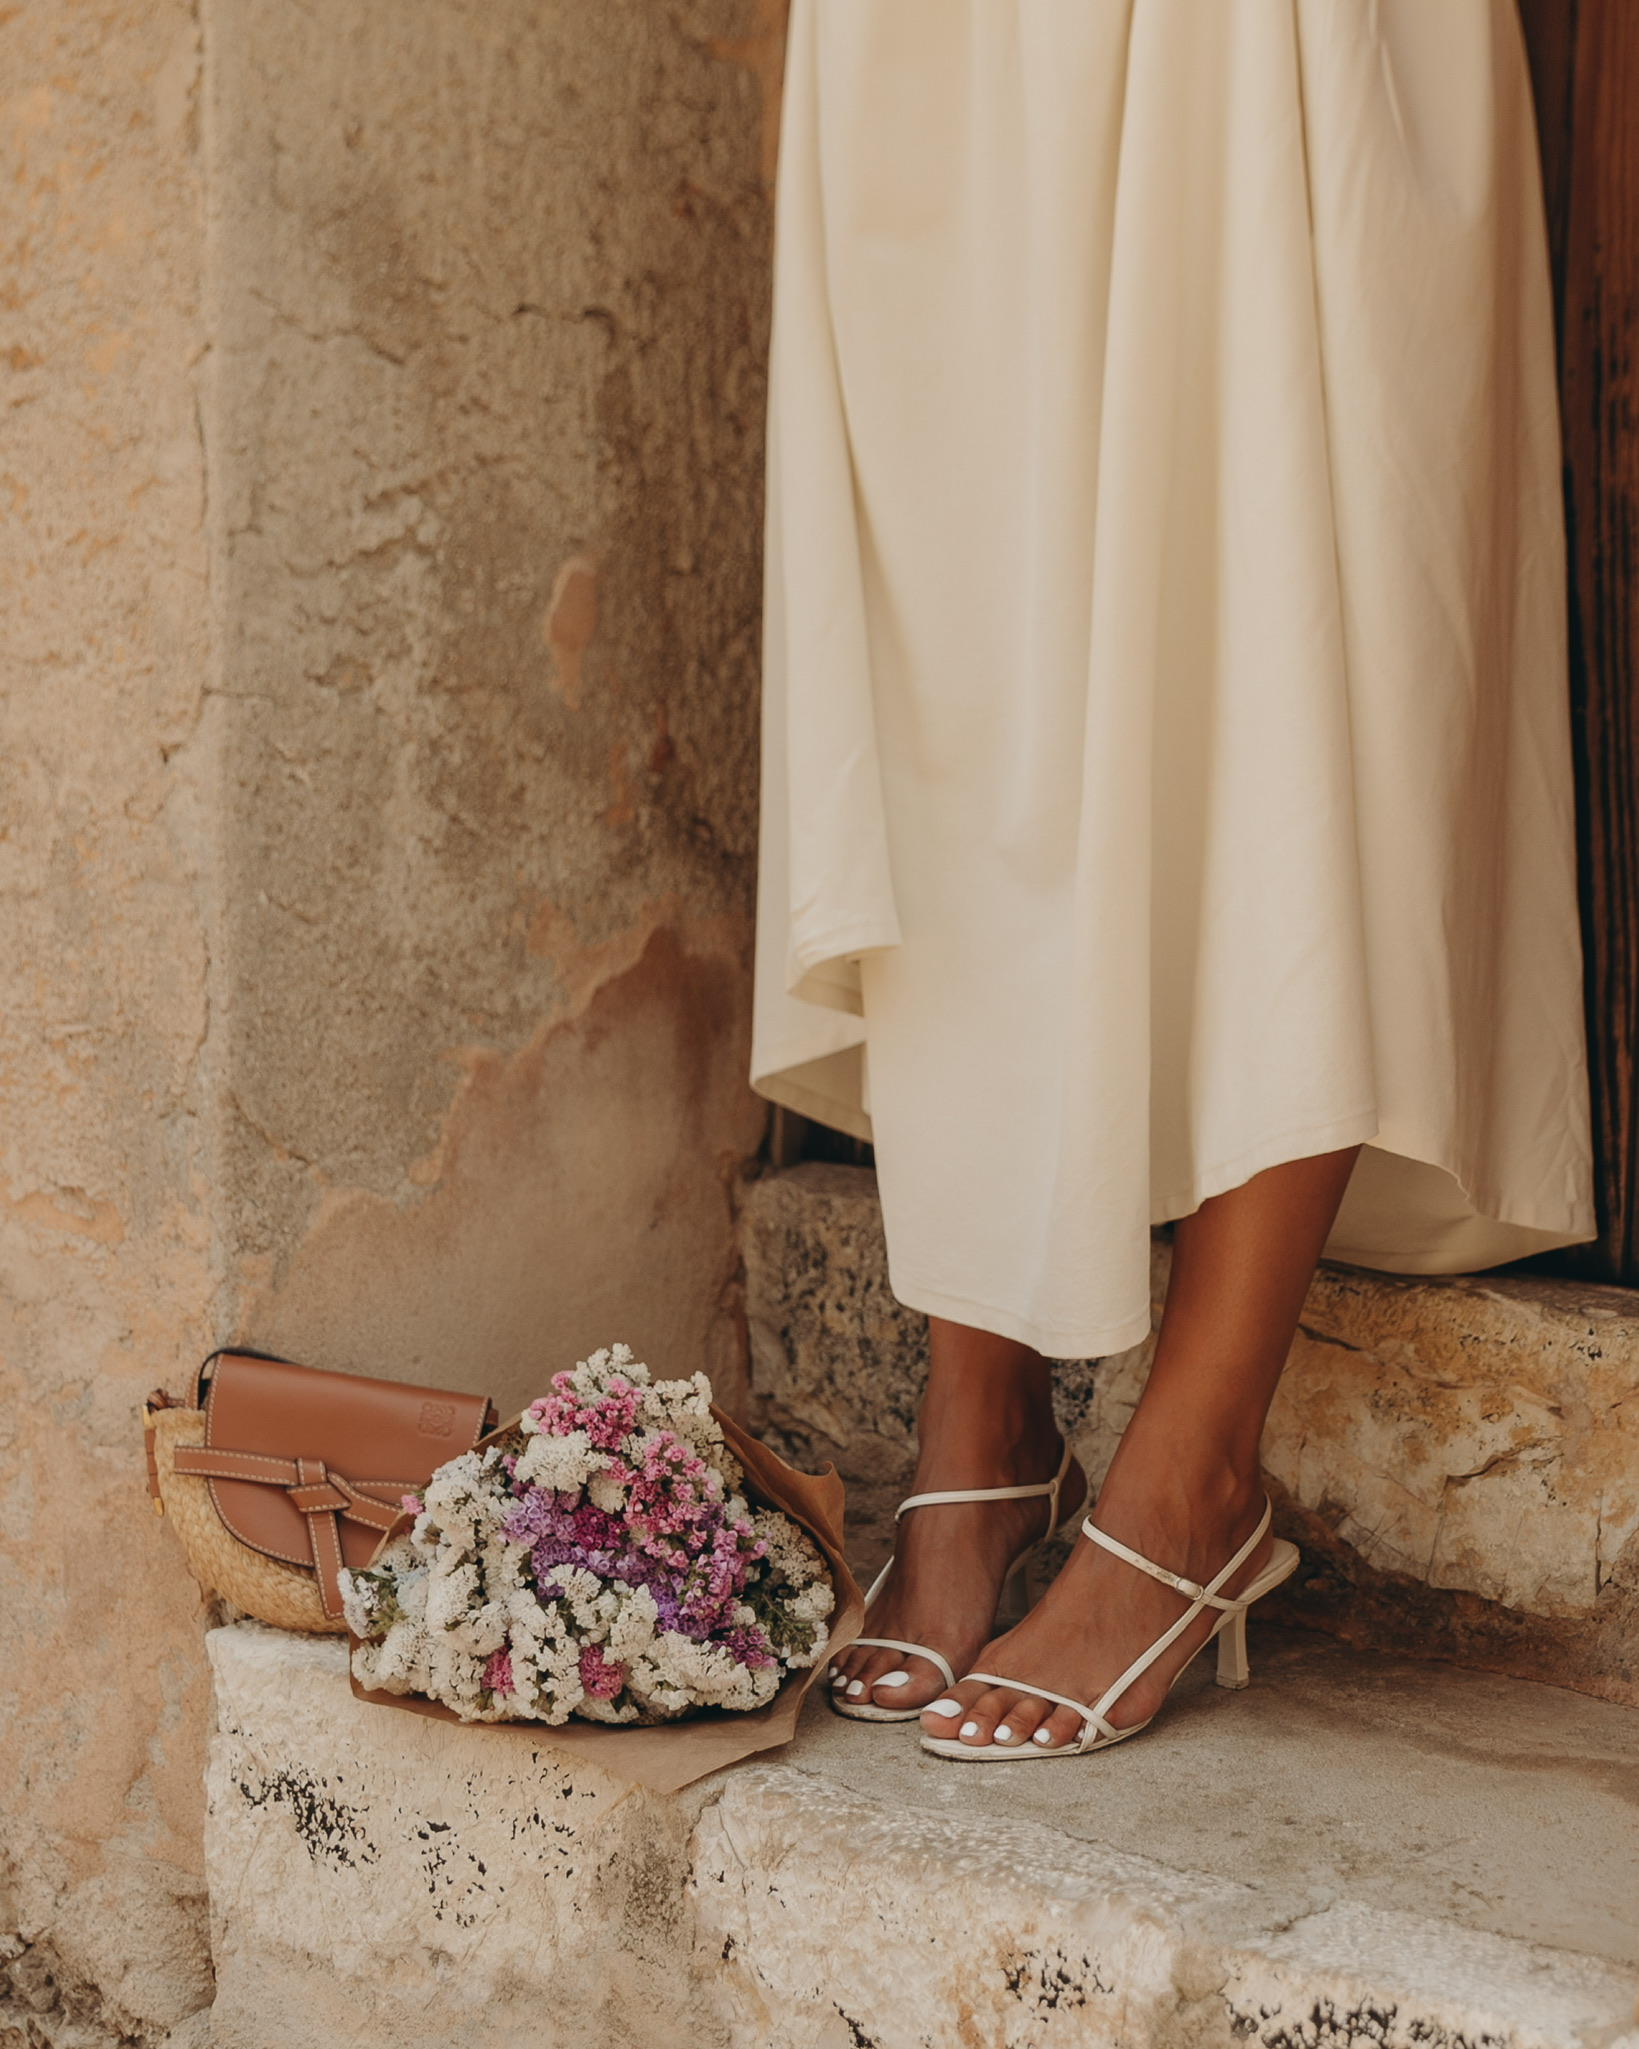 Sara from Collage Vintage is wearing a Cettire total look, Khaite Ren Ruched Midi Dress, Reike Nen Sandals, Loewe Gate Bag